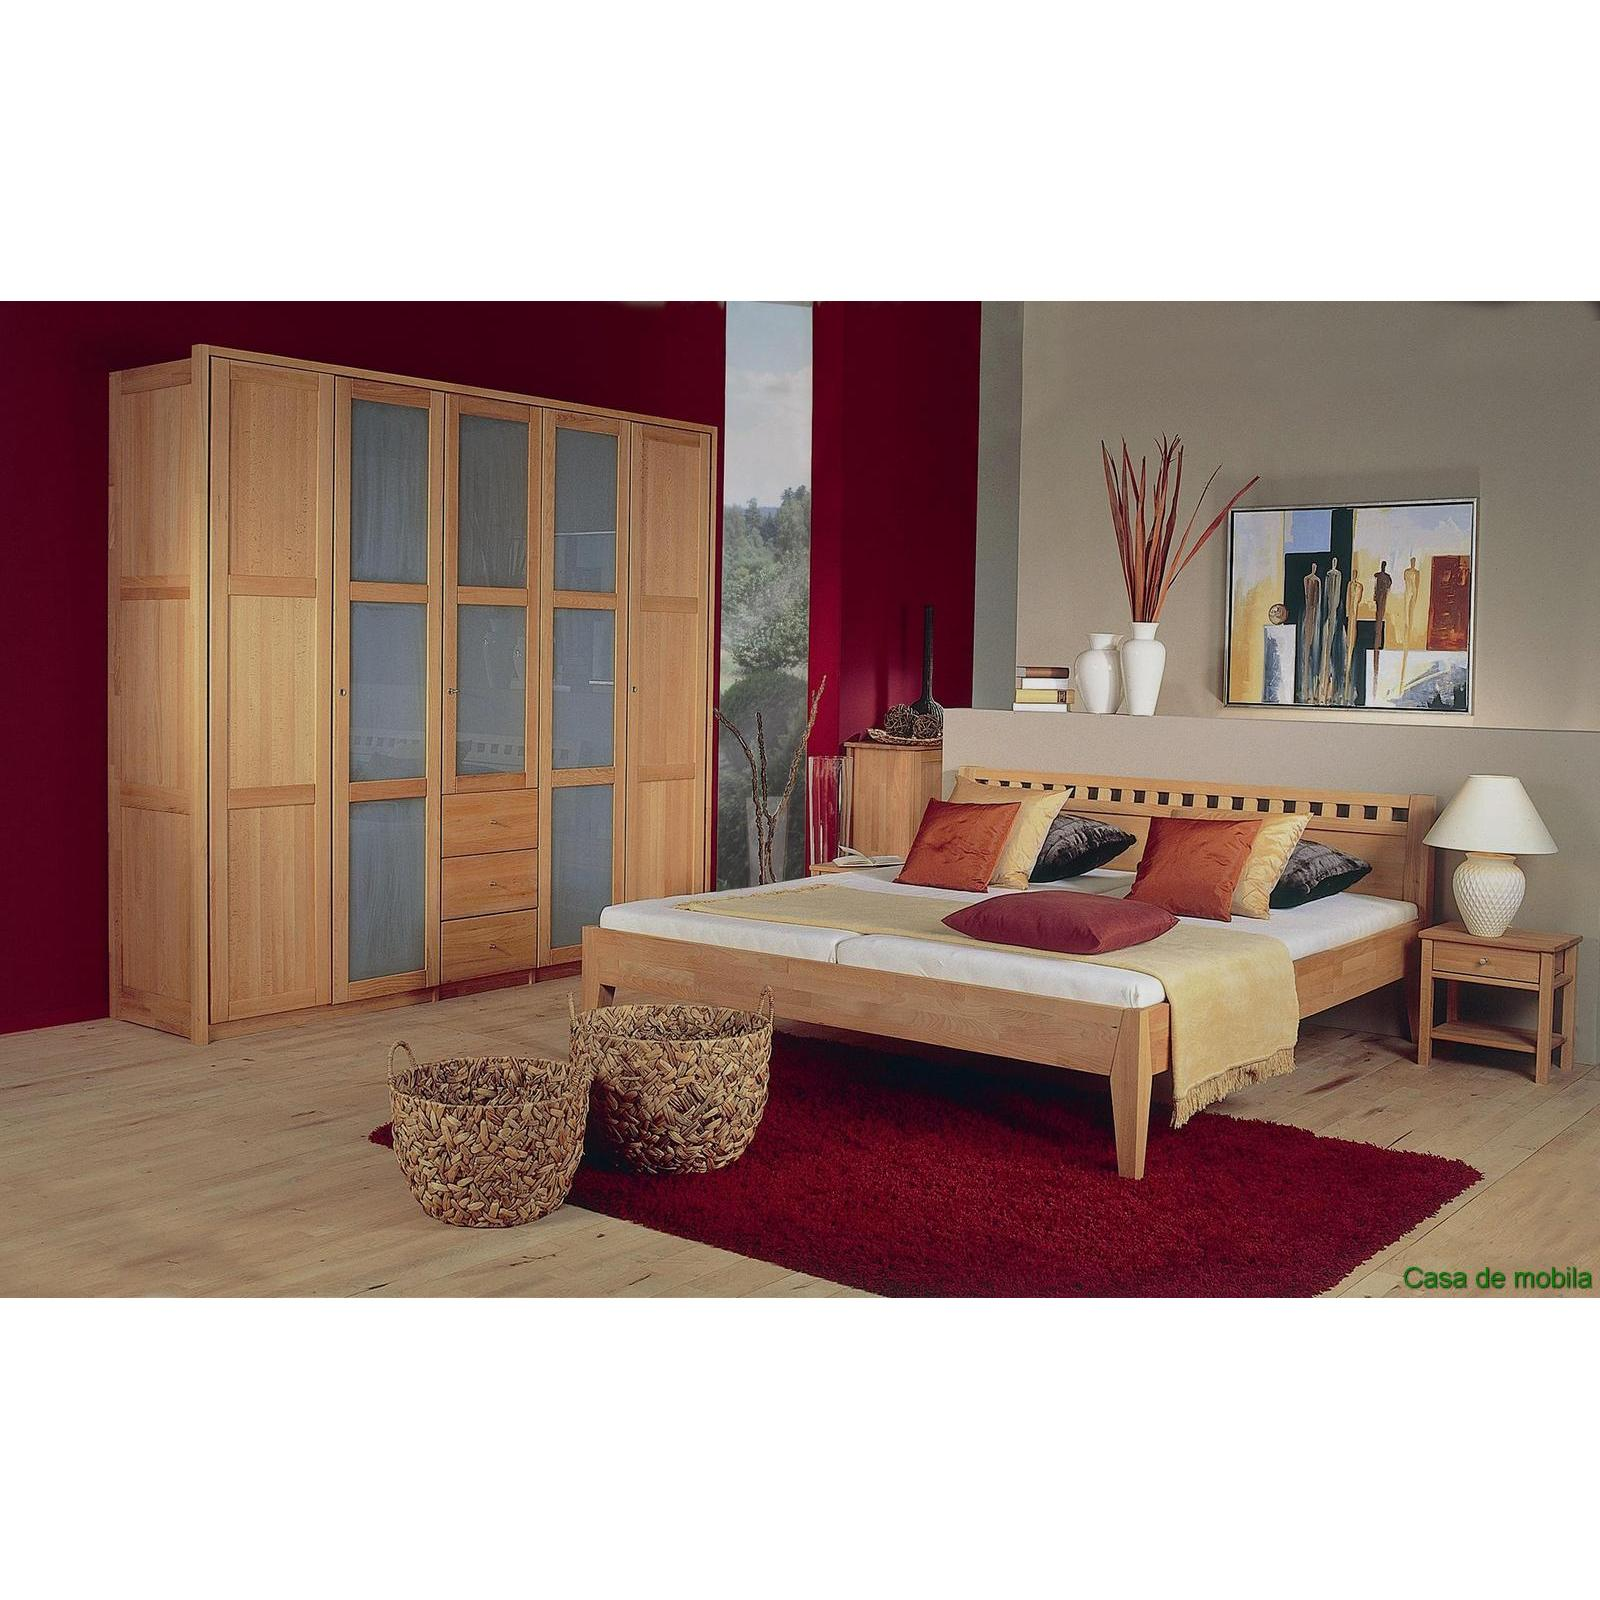 massivholz schlafzimmer komplett buche massiv ge lt diana ii holz bett 160x200 ebay. Black Bedroom Furniture Sets. Home Design Ideas